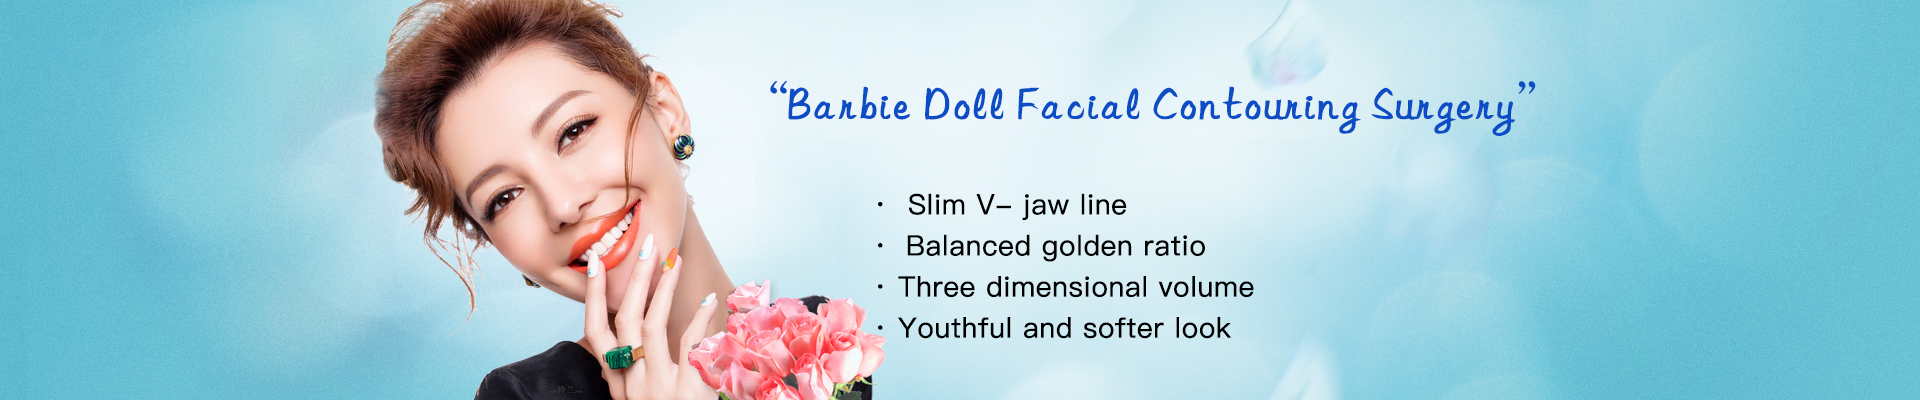 Barbie doll facial contouring